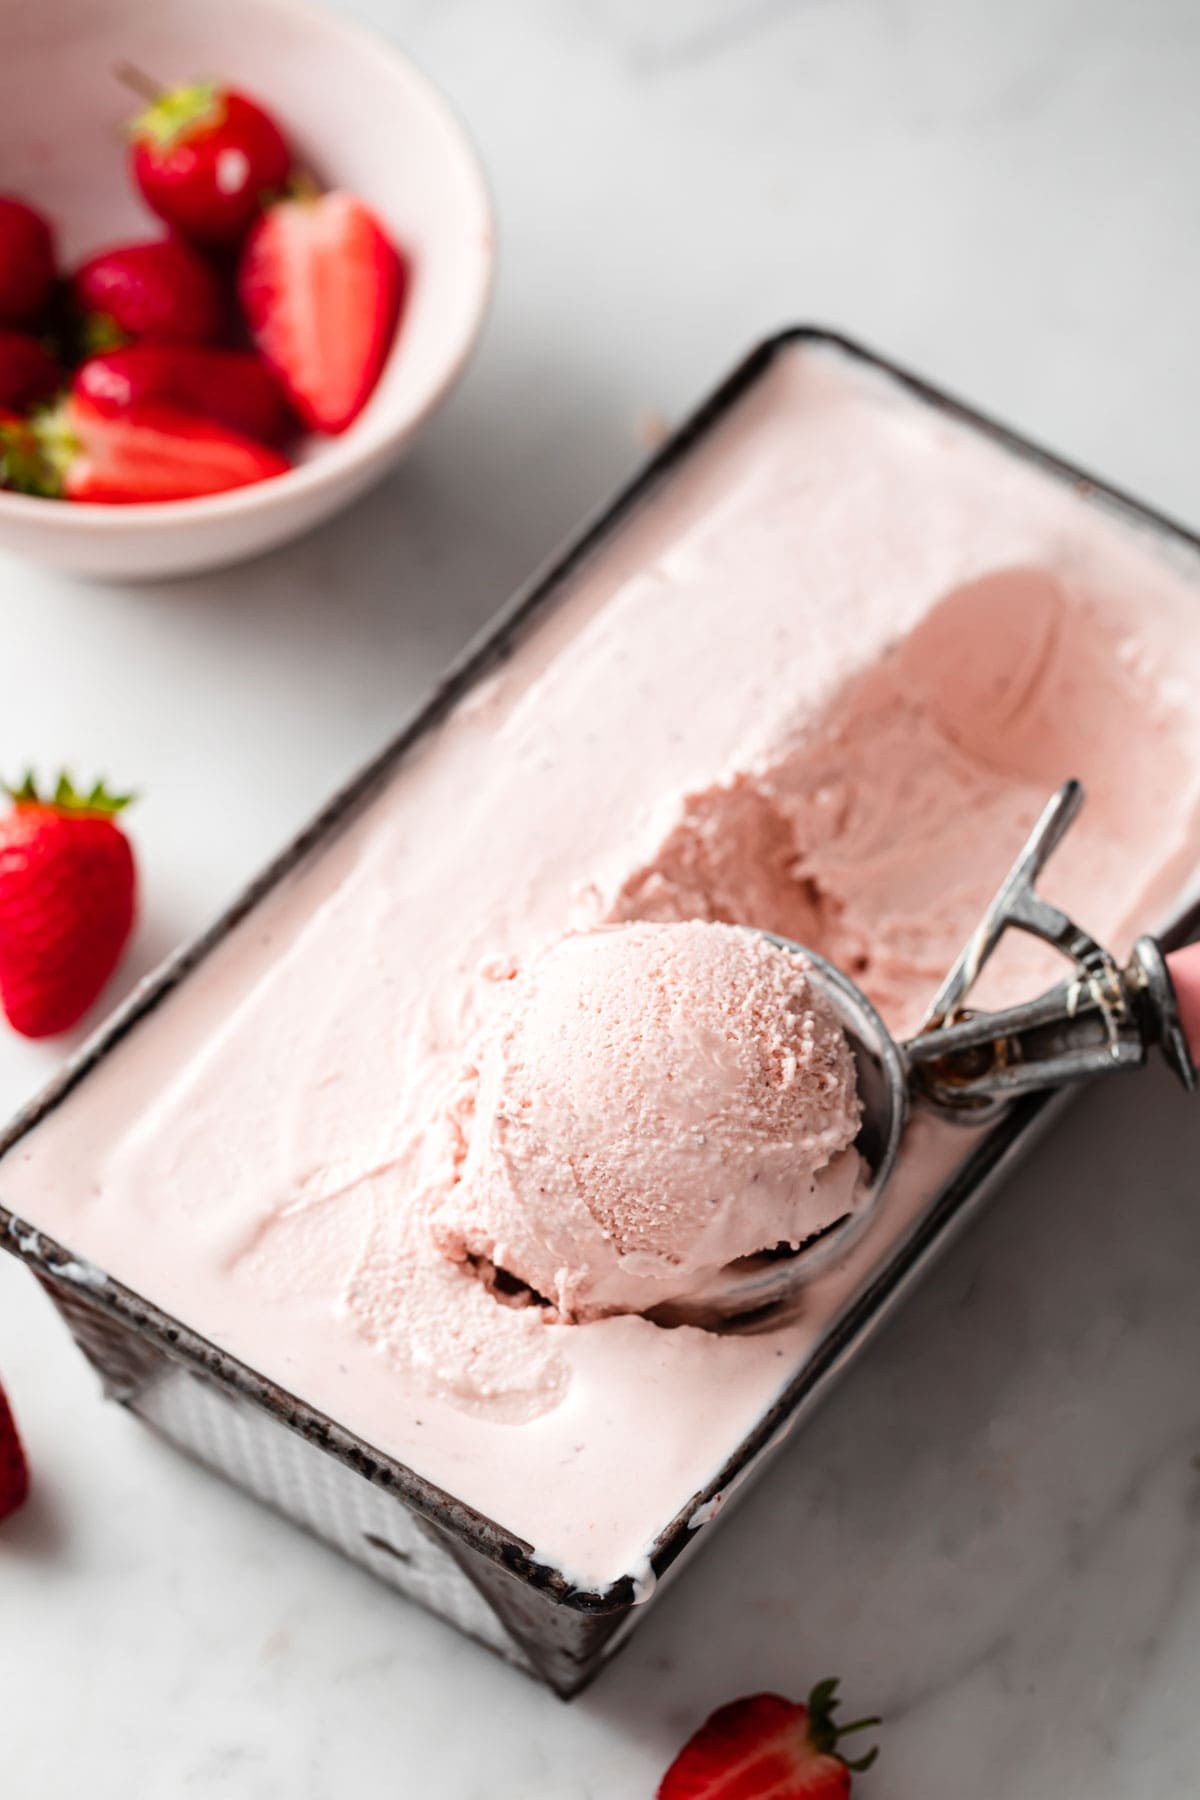 scooping low carb strawberry ice cream out of a container